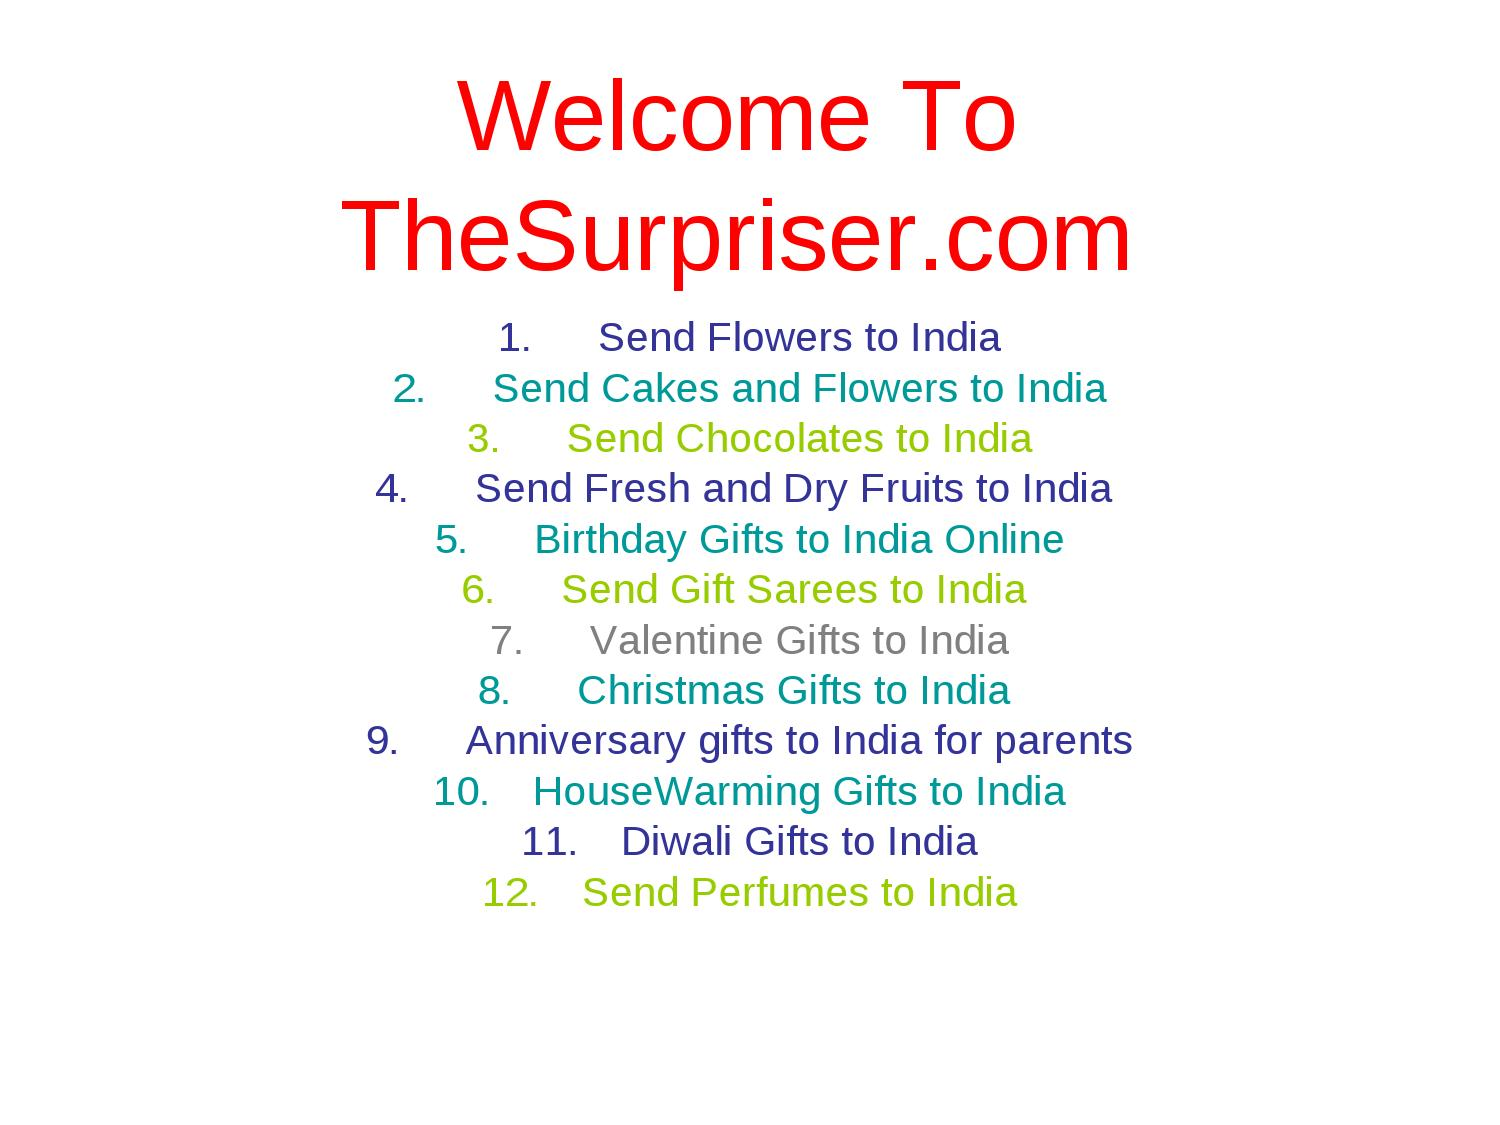 how to send gift from usa to india